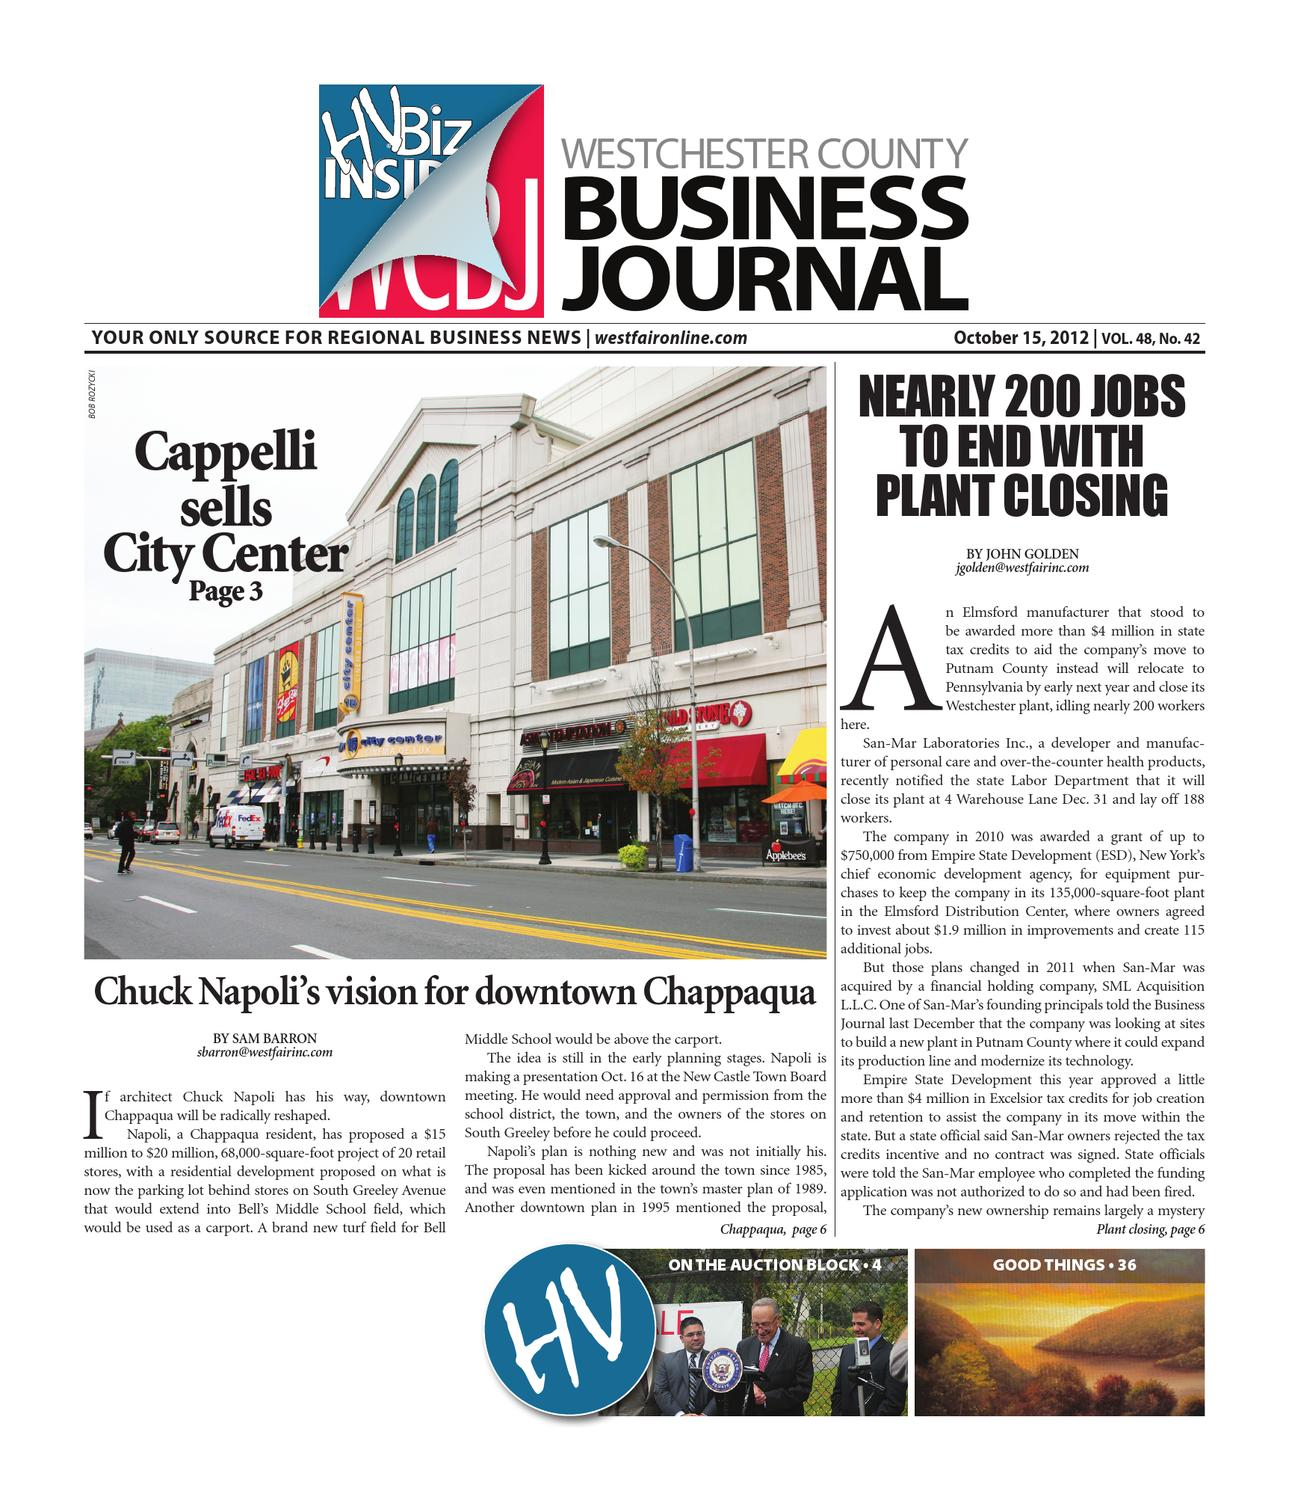 Westchester County Business Journal 10/15/2012 Issue by Wag Magazine - issuu